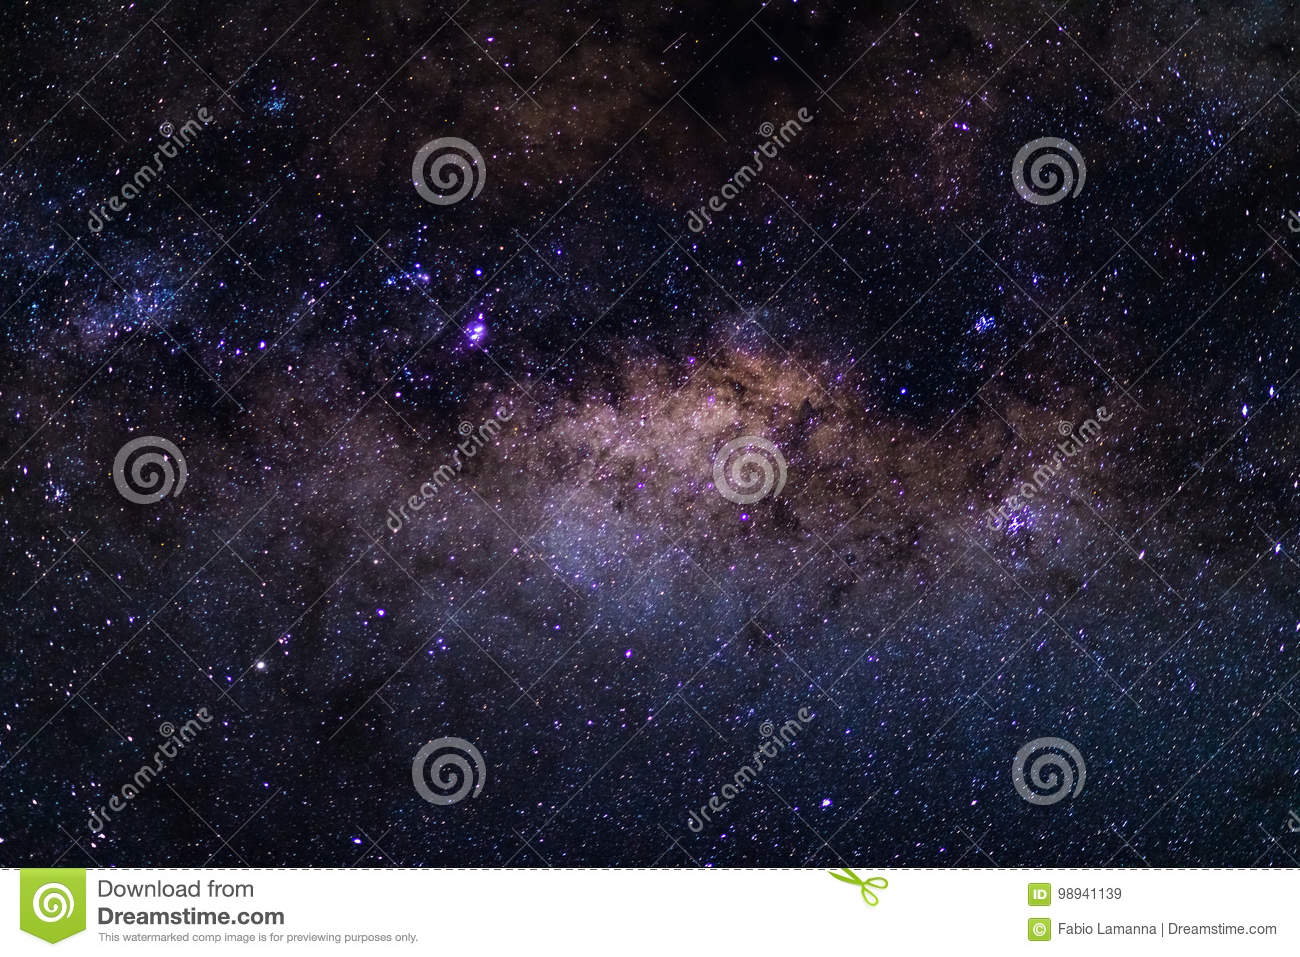 The austral Milky Way, with details of its colorful core, outstandingly bright. Captured from the Southern Hemisphere.